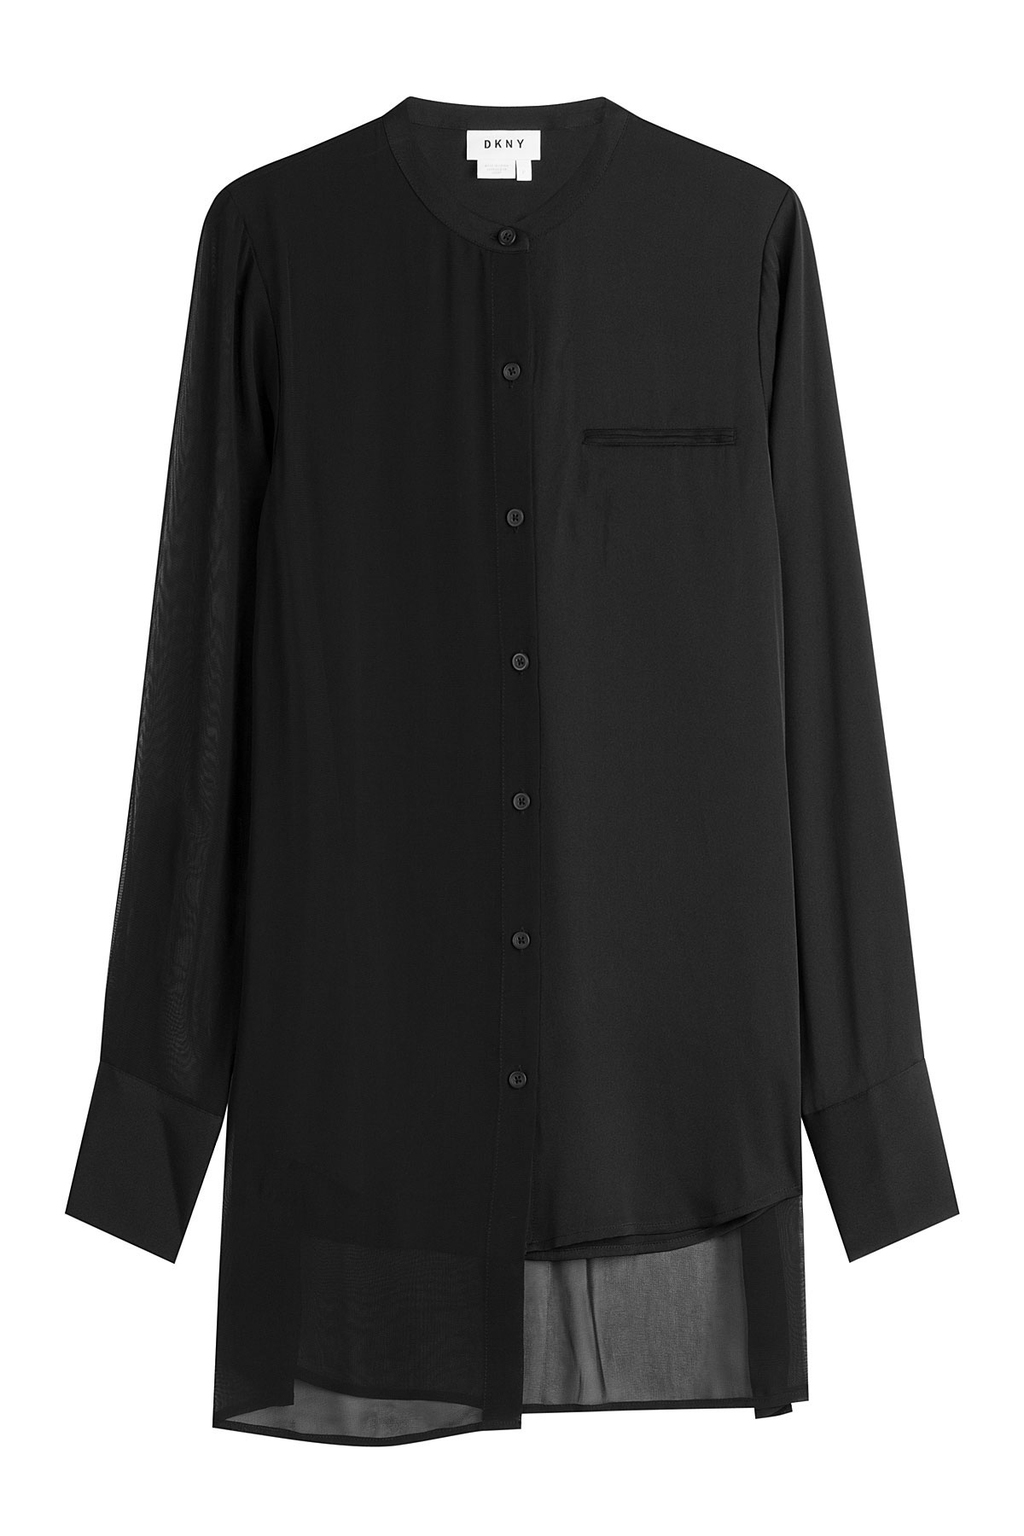 Silk Blouse With Asymmetric Hem Black - pattern: plain; length: below the bottom; style: blouse; predominant colour: black; occasions: evening; fibres: silk - 100%; fit: loose; neckline: crew; sleeve length: long sleeve; sleeve style: standard; texture group: silky - light; pattern type: fabric; season: a/w 2016